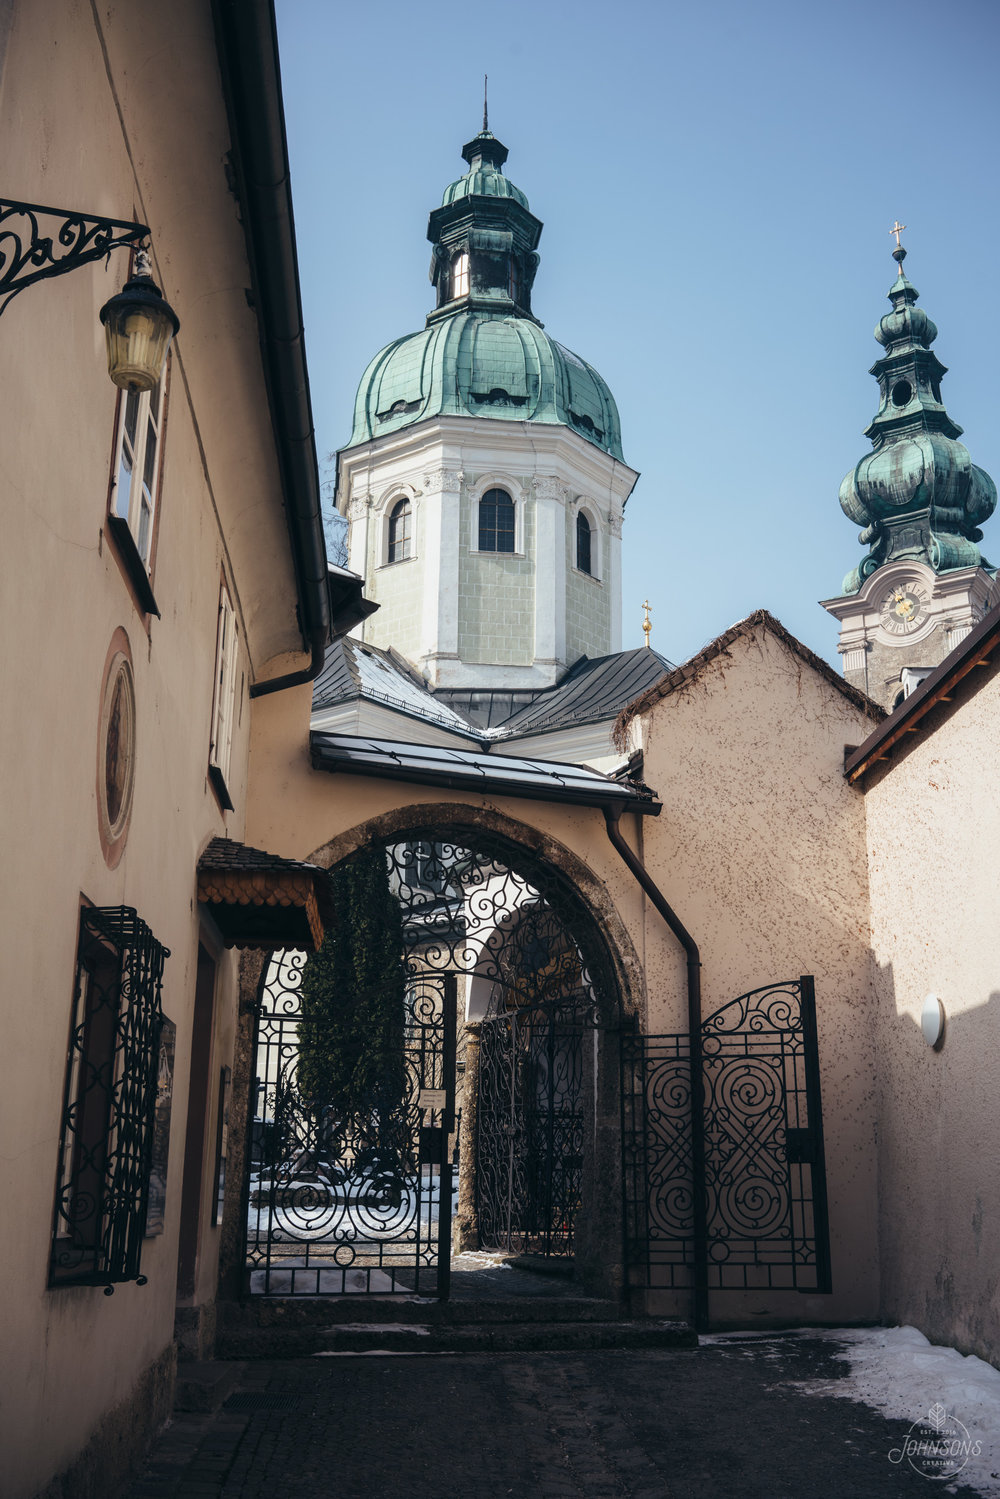 Sony a7rii | 35mm 2.8 | f9 | 1/100 | ISO 50 | 3 image stitched panoramic     Petersfriedhof Salzburg. Once again, this would be a way more eye-catching composition if it was just after a snowfall.